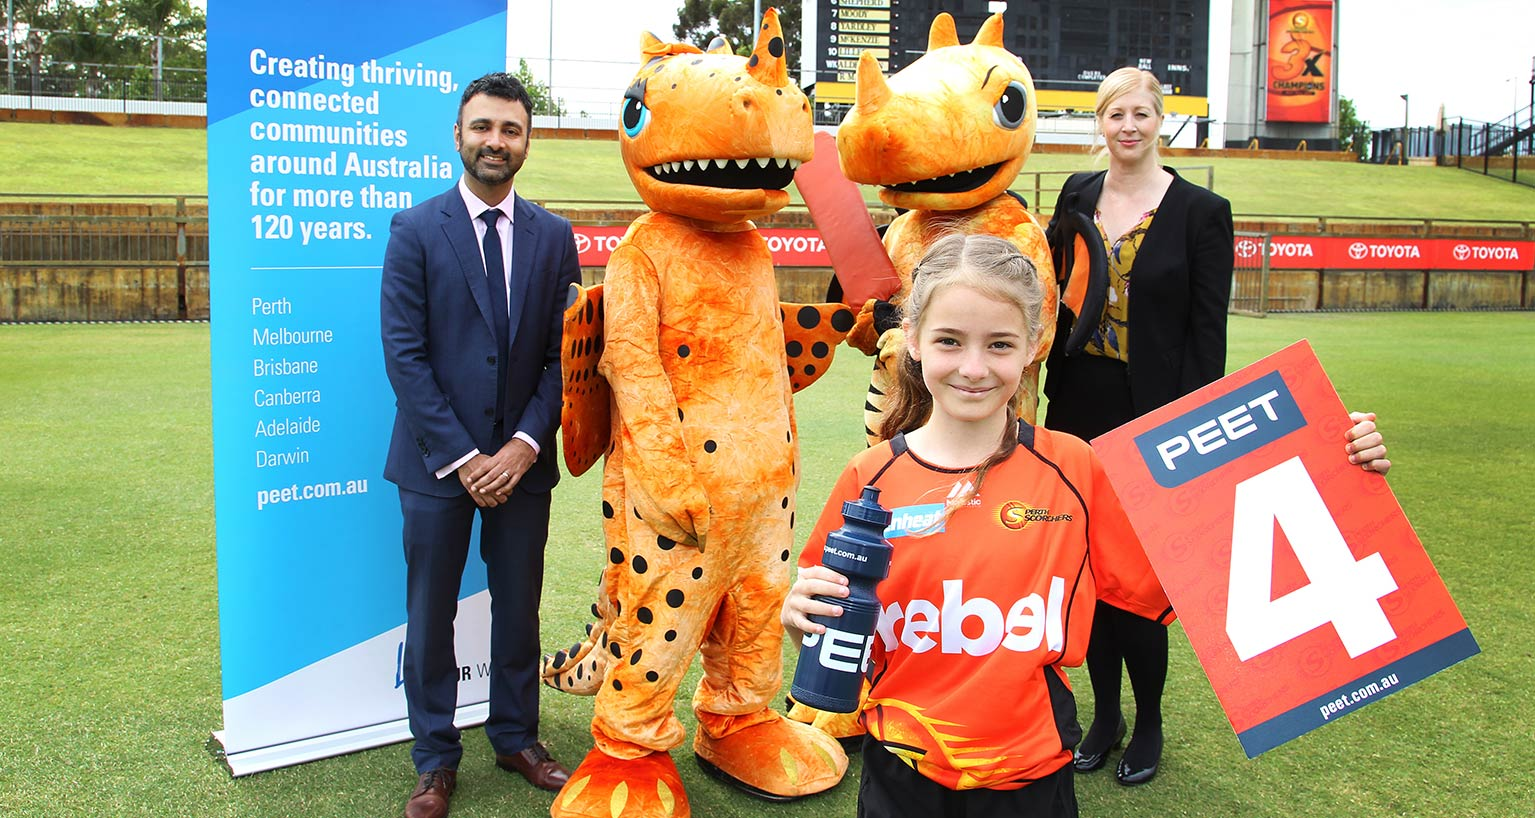 Peet and Scorchers announcement